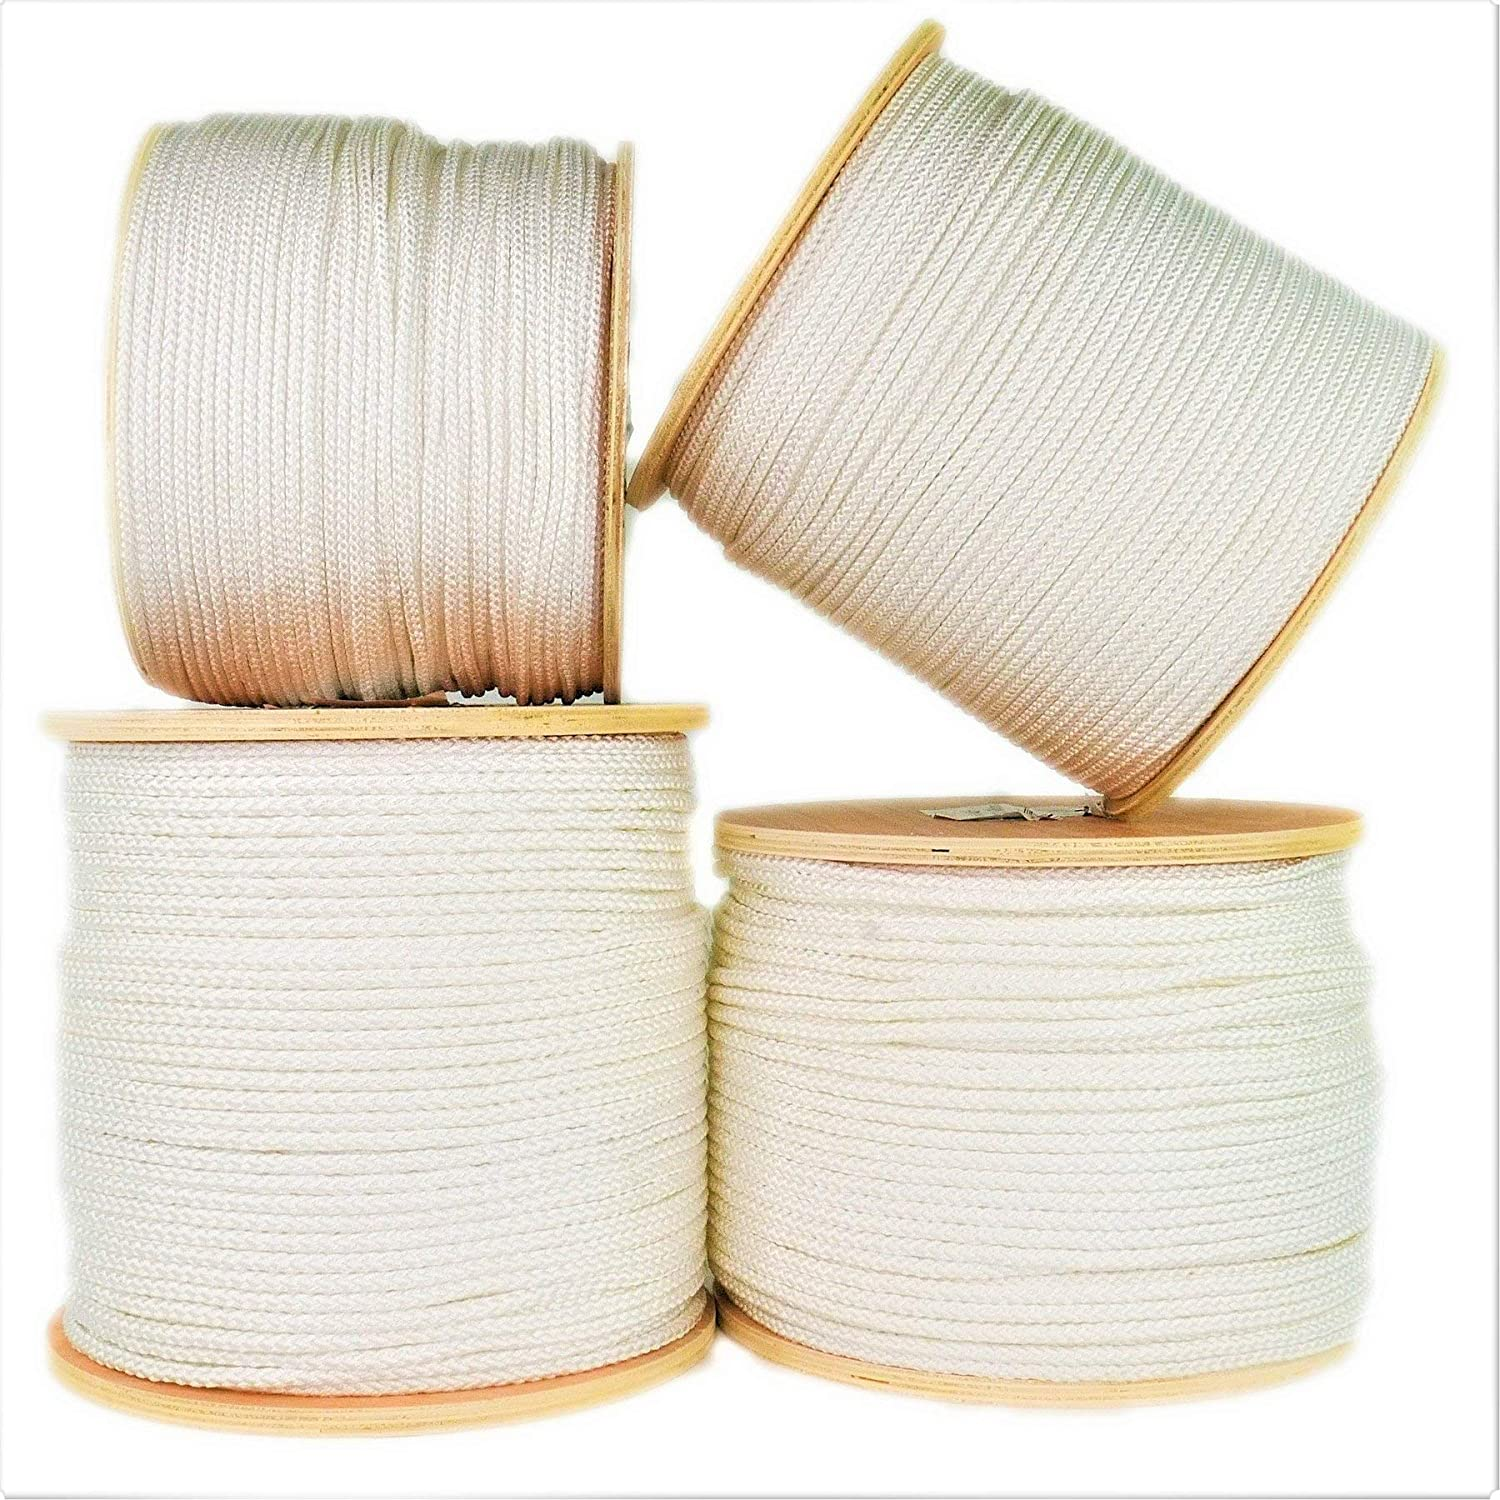 SGT KNOTS Crab Fishing Line Diamond Braid Utility Cord with Parallel Core 9//32 x 25ft Coil, White Abrasion Resistant